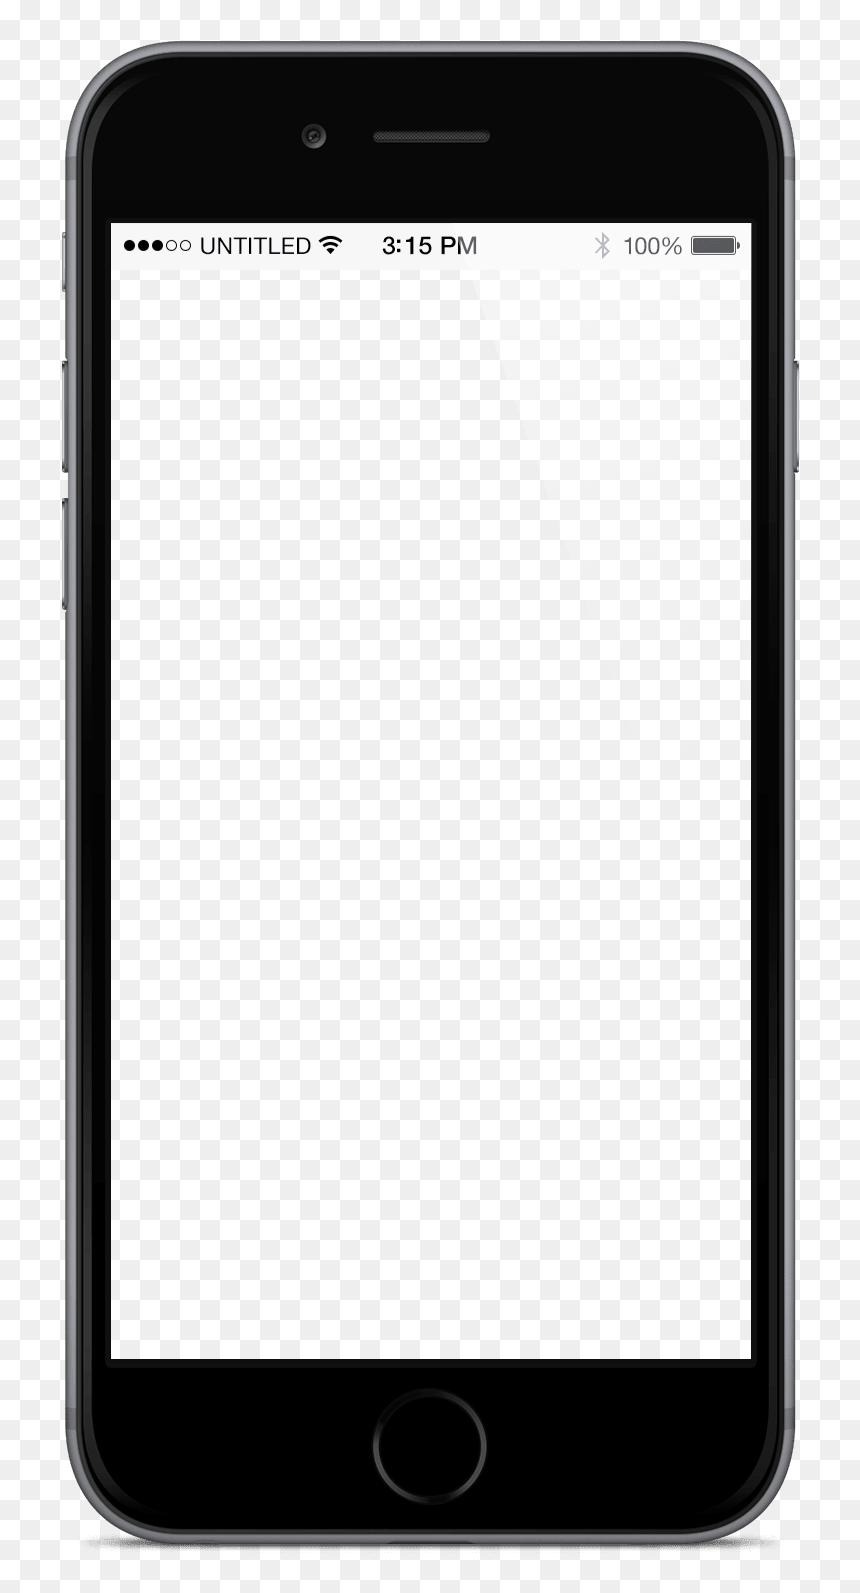 Transparent Iphone Message Bubble Png - Android Phone Png Logo, Png Download